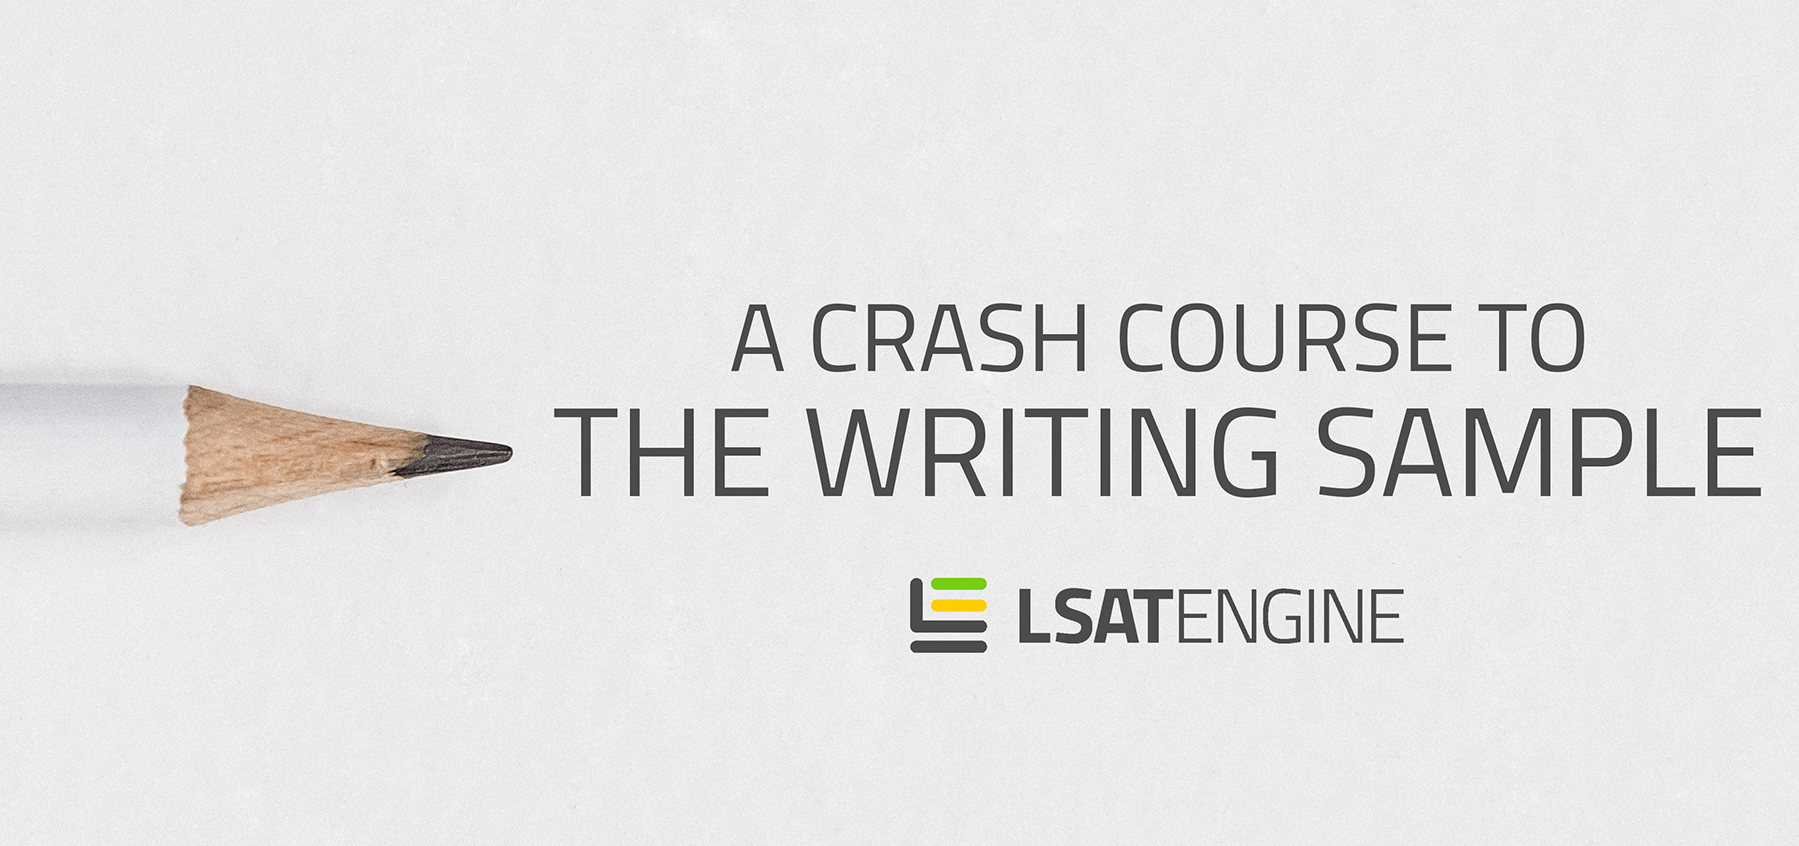 015 Essay Example Lsat Writing Sample Heading Amazing Questions Topics Examples Full